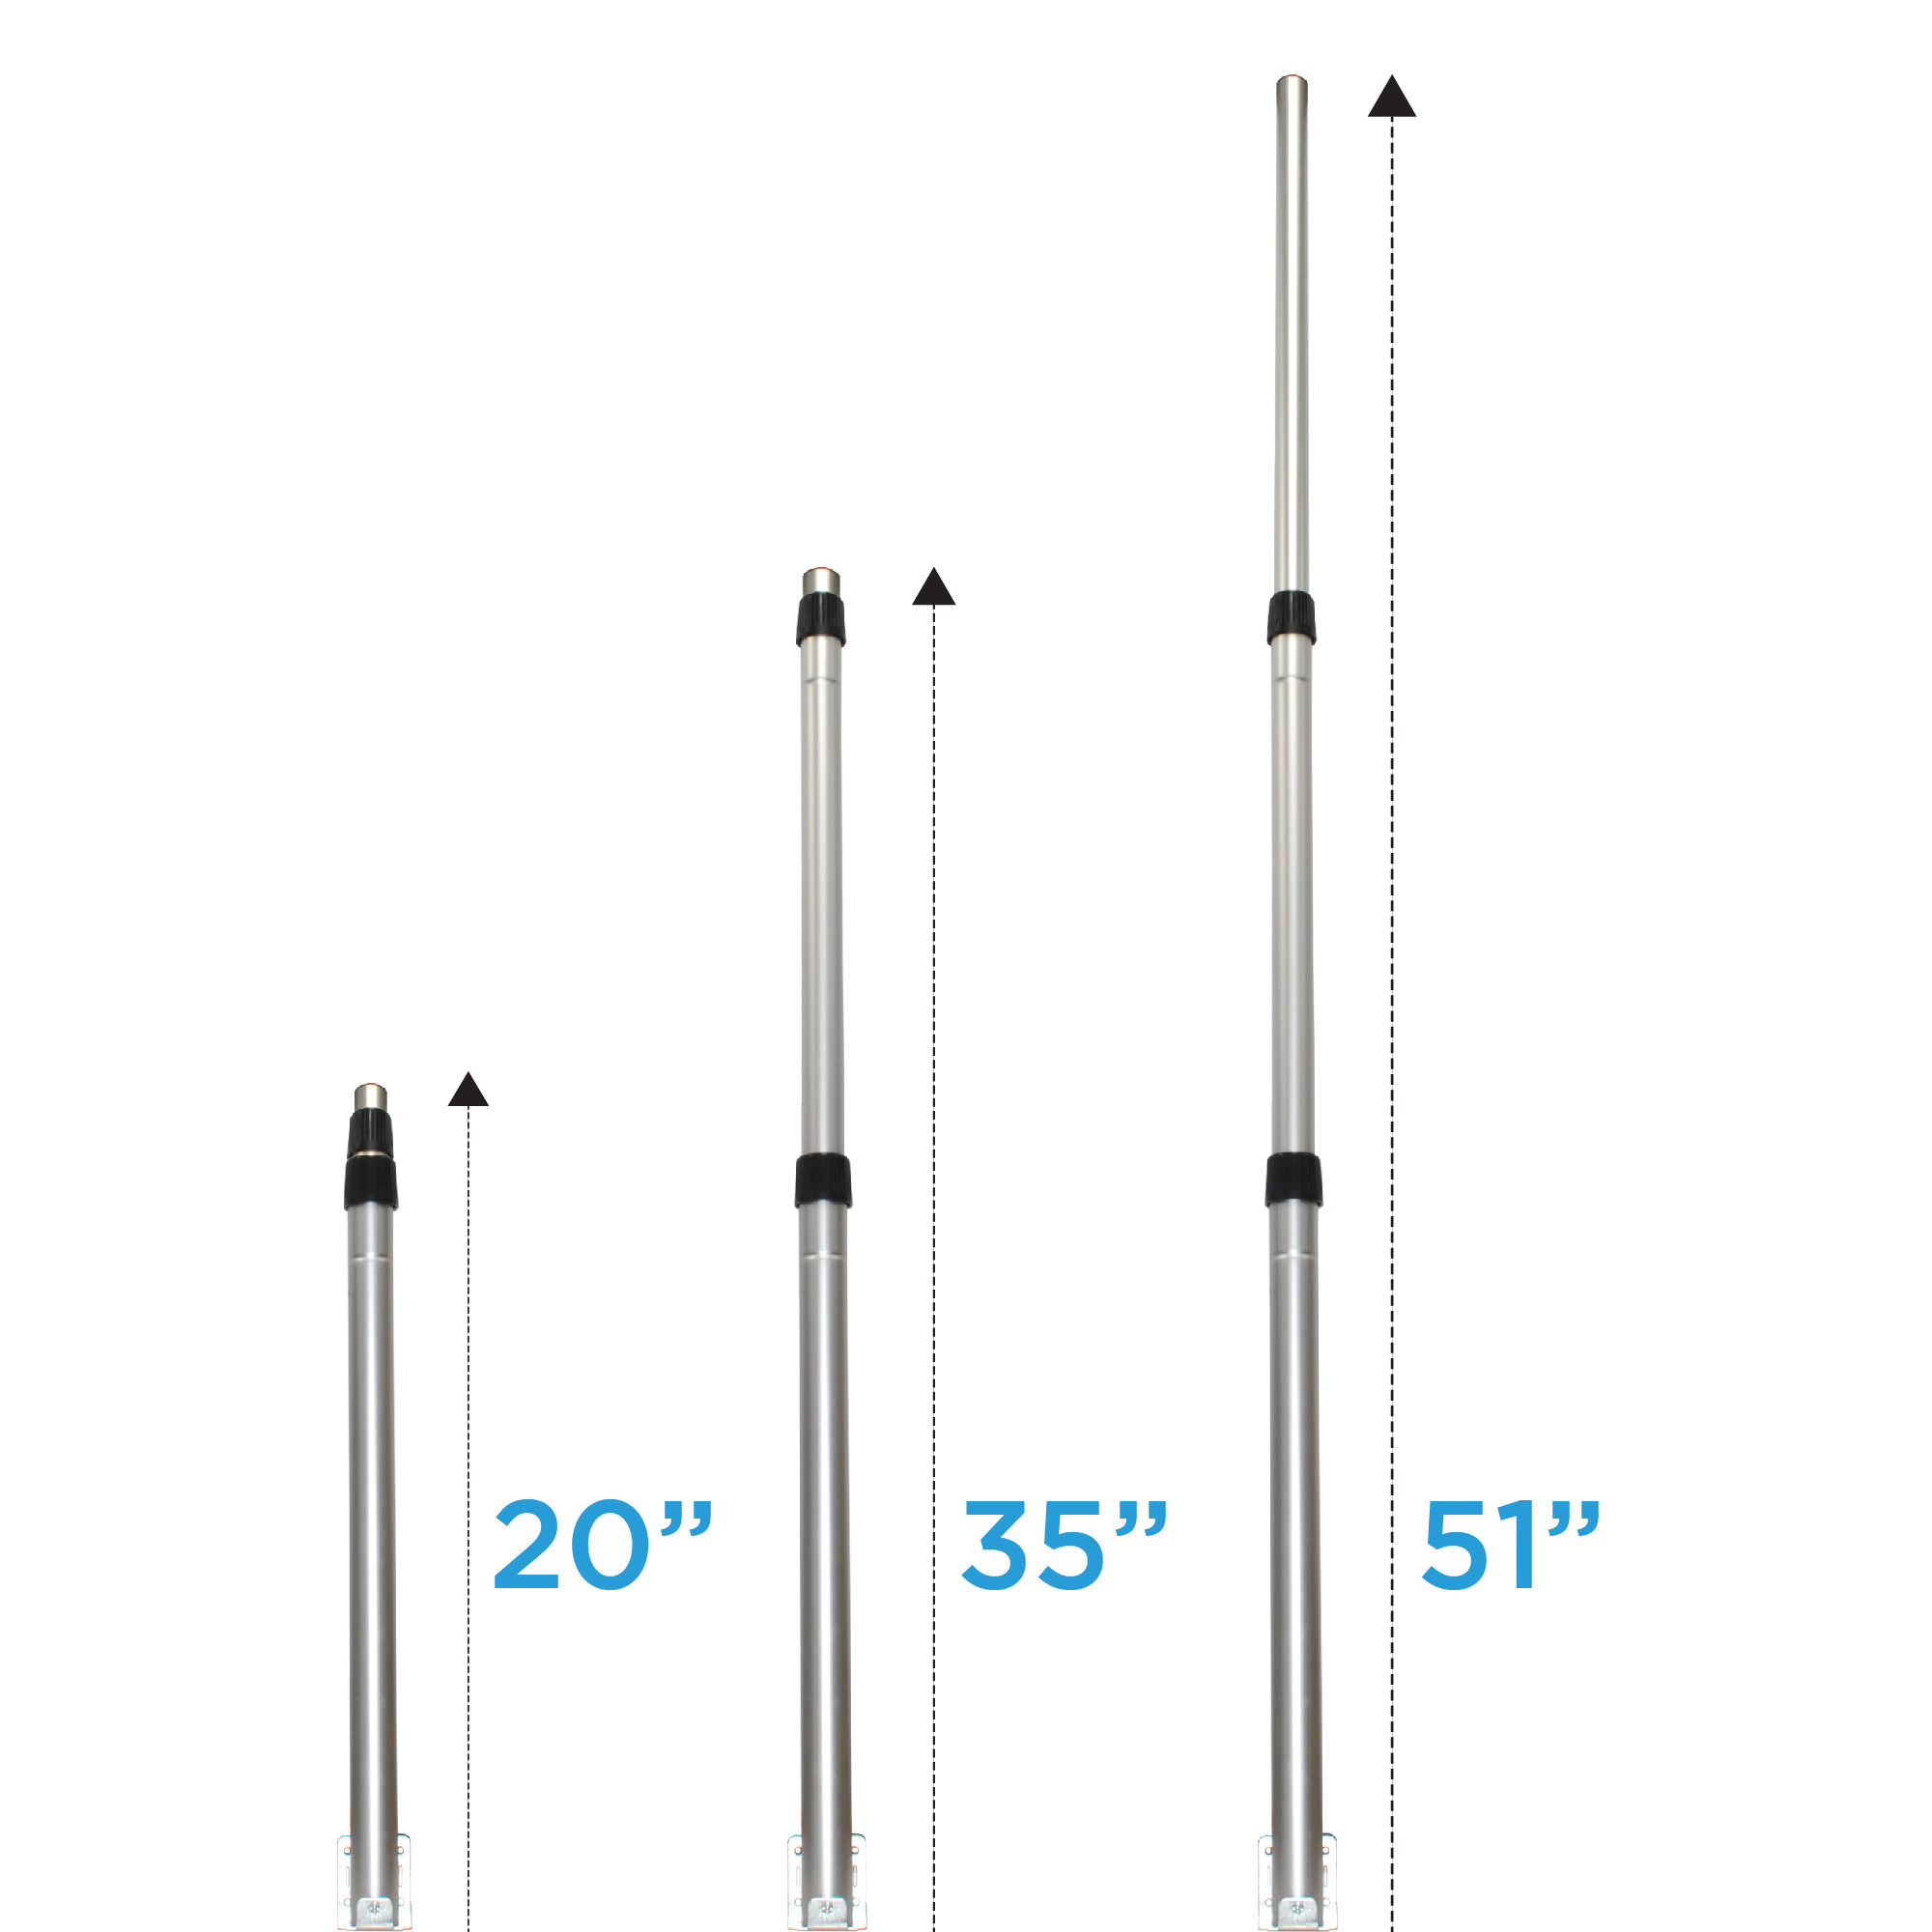 TRAM 1499 CB Base Antenna No Ground Plane For All Applications